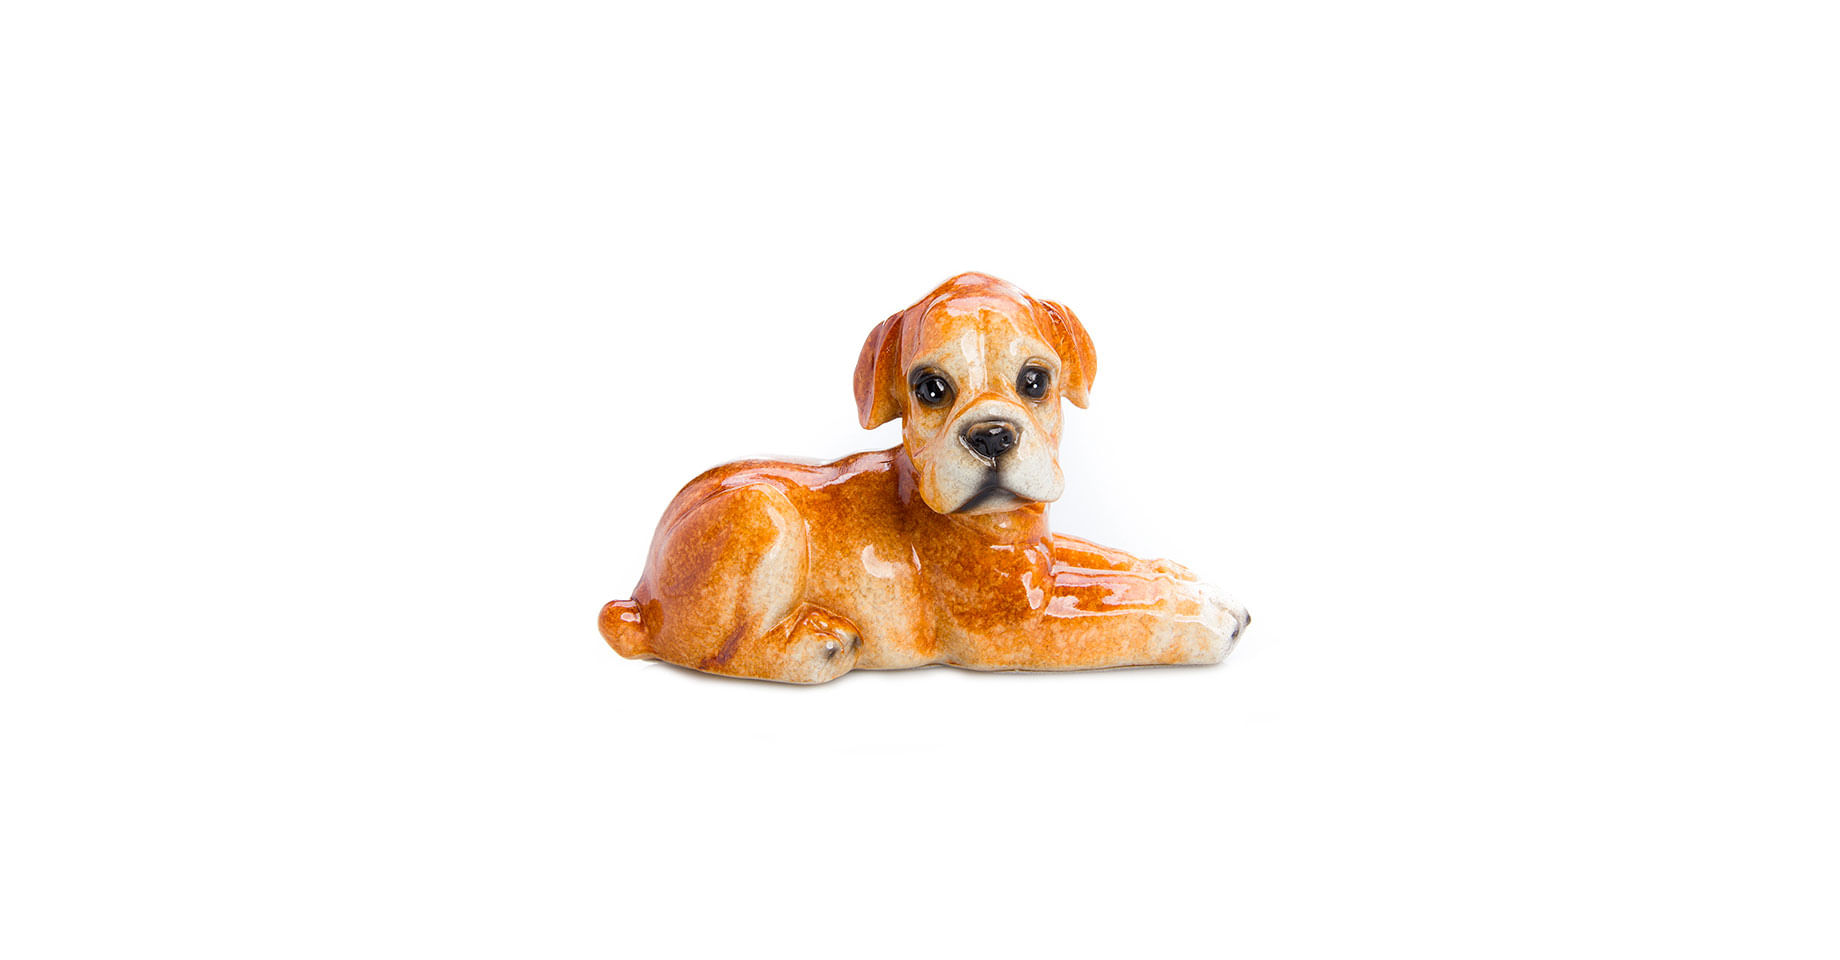 010120231_001_1-DECORATIVO-PUPPY-2